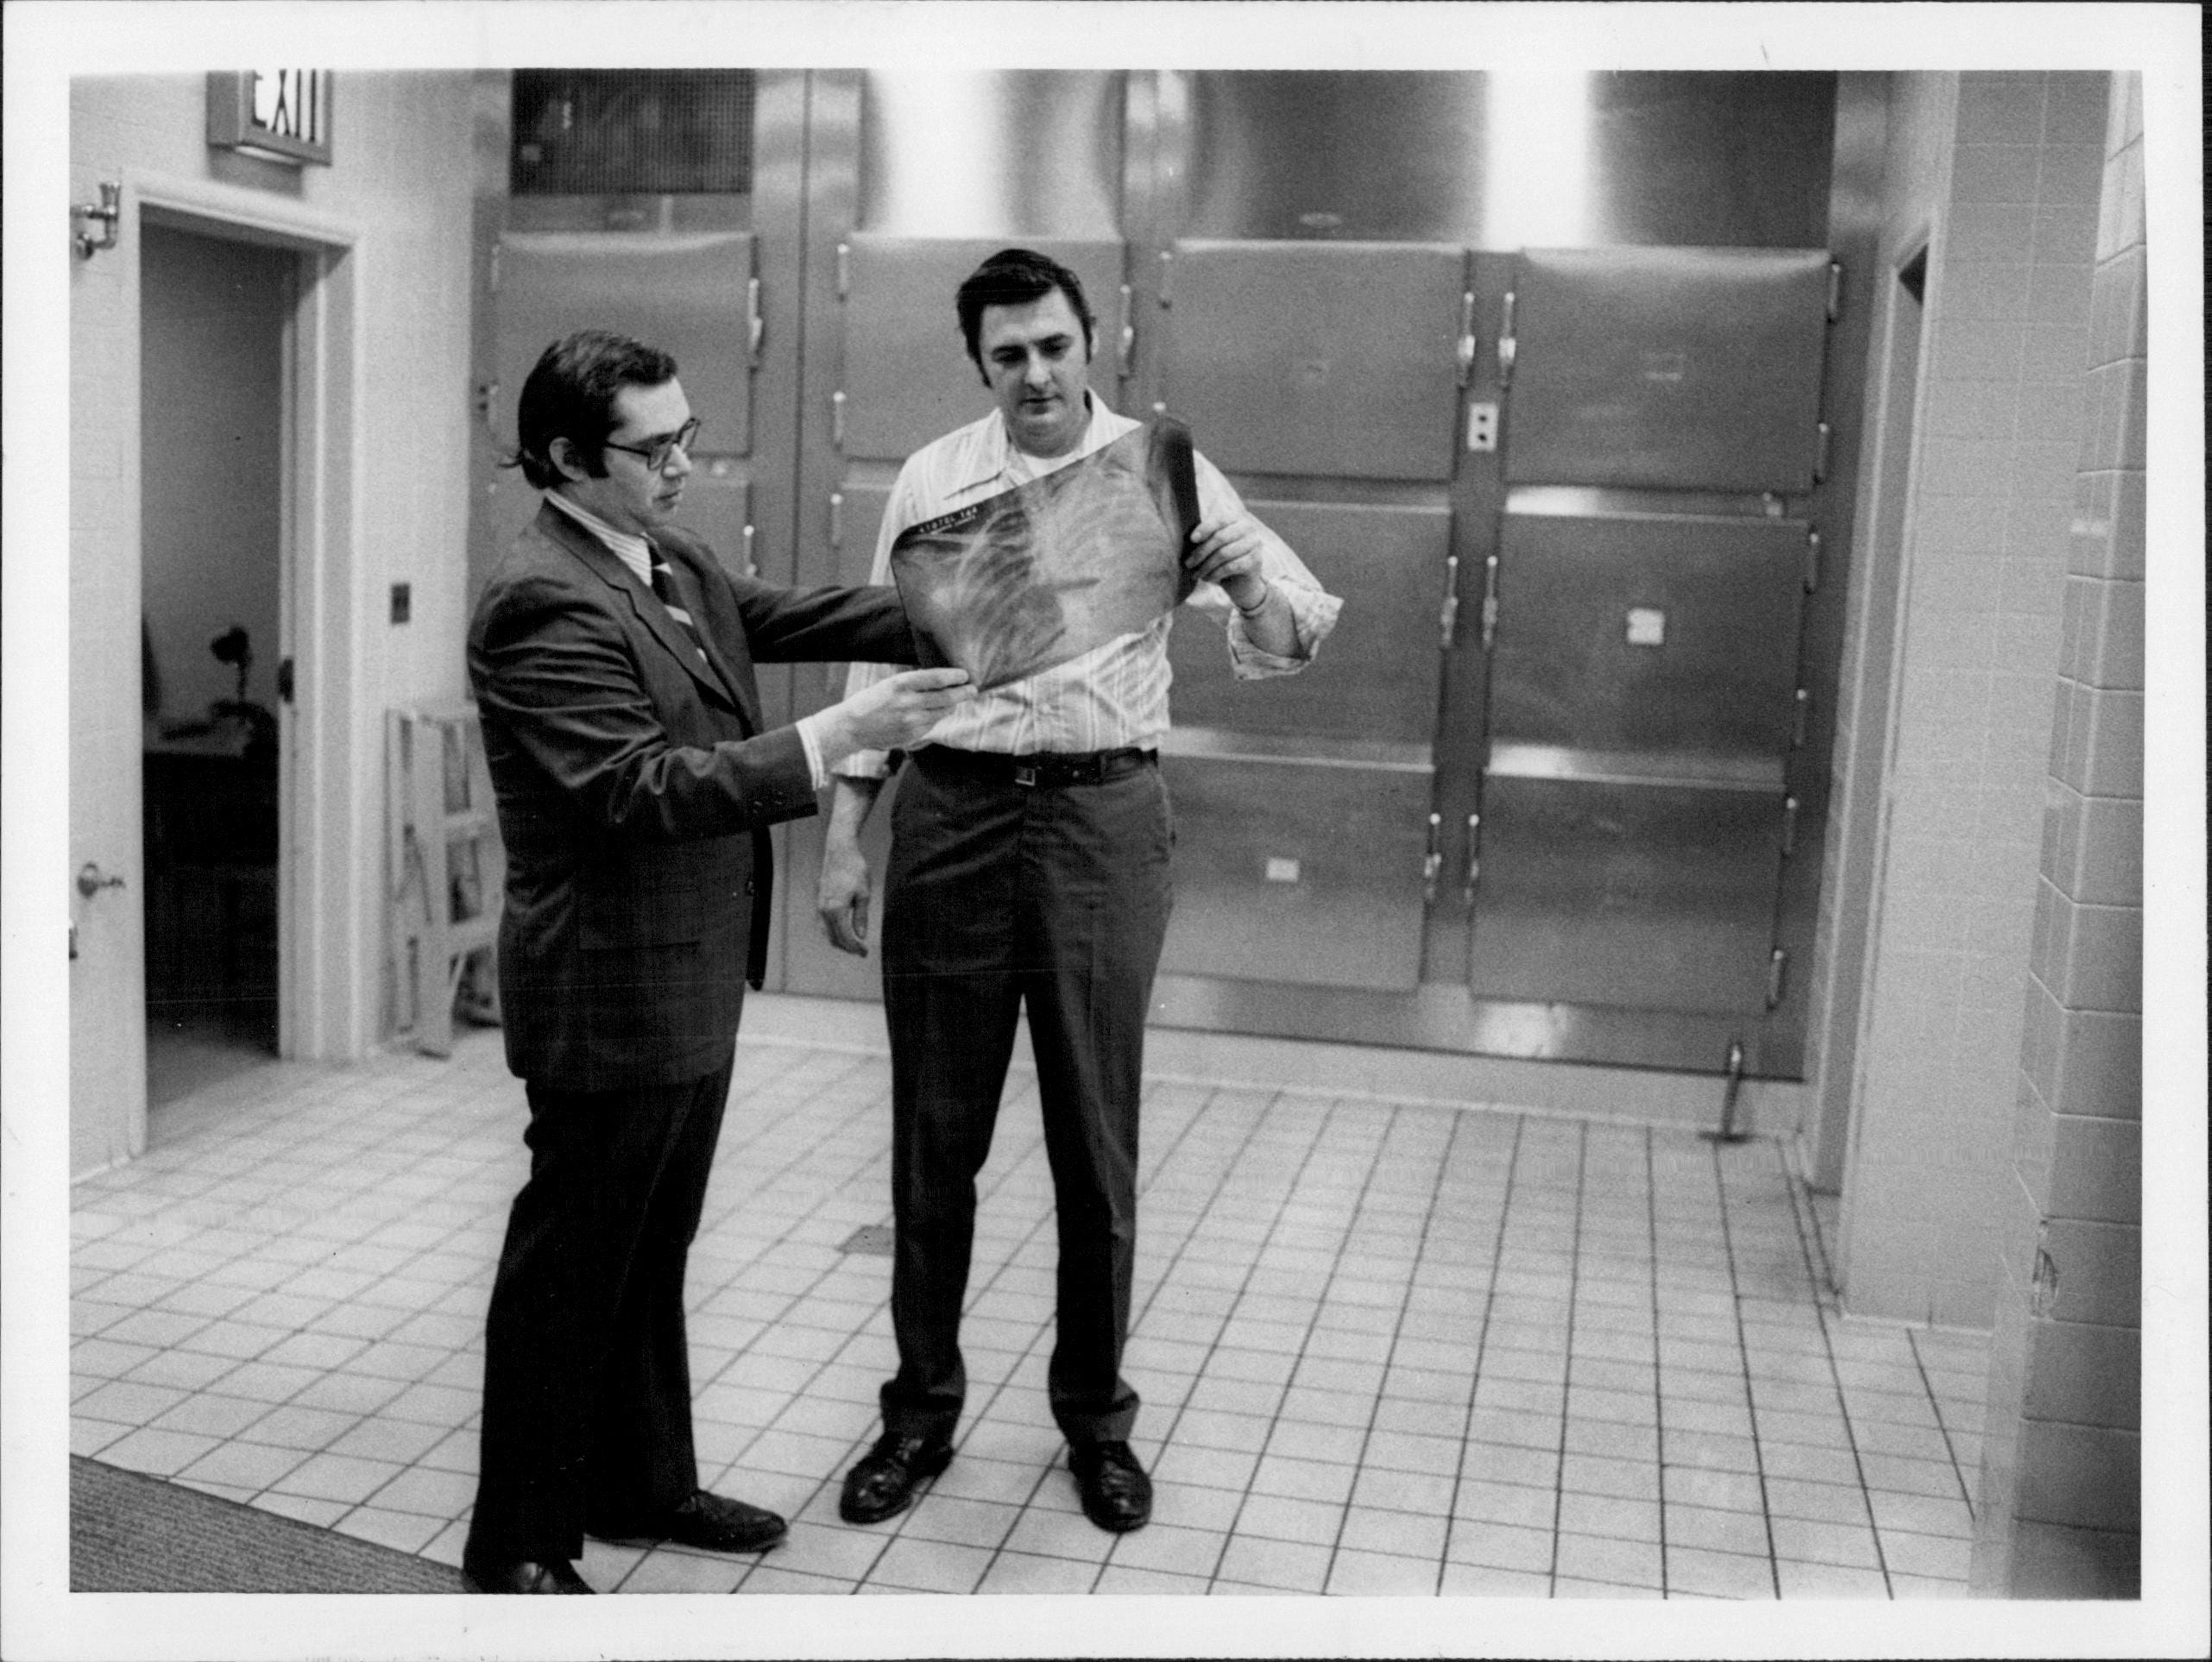 Dr. John Edland, left, and Ed Riley with an X-ray image in Monroe County Medical Examiner's Office in 1972.